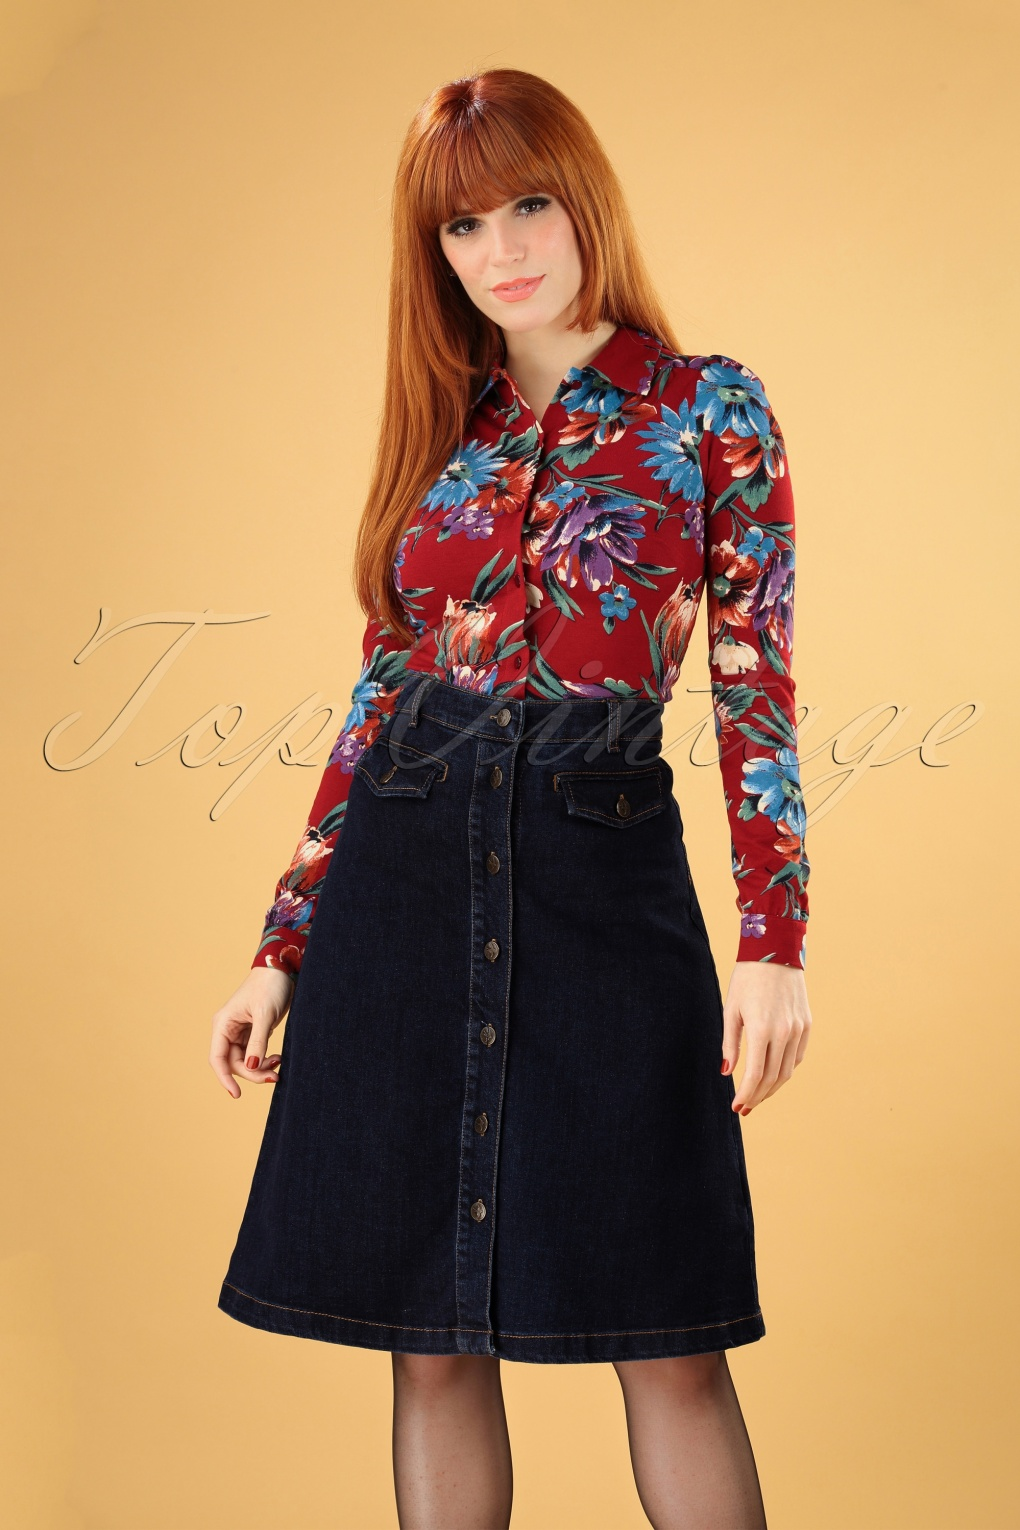 Vintage Inspired Dresses & Clothing UK 60s Caroll Skirt in Denim Blue £71.26 AT vintagedancer.com